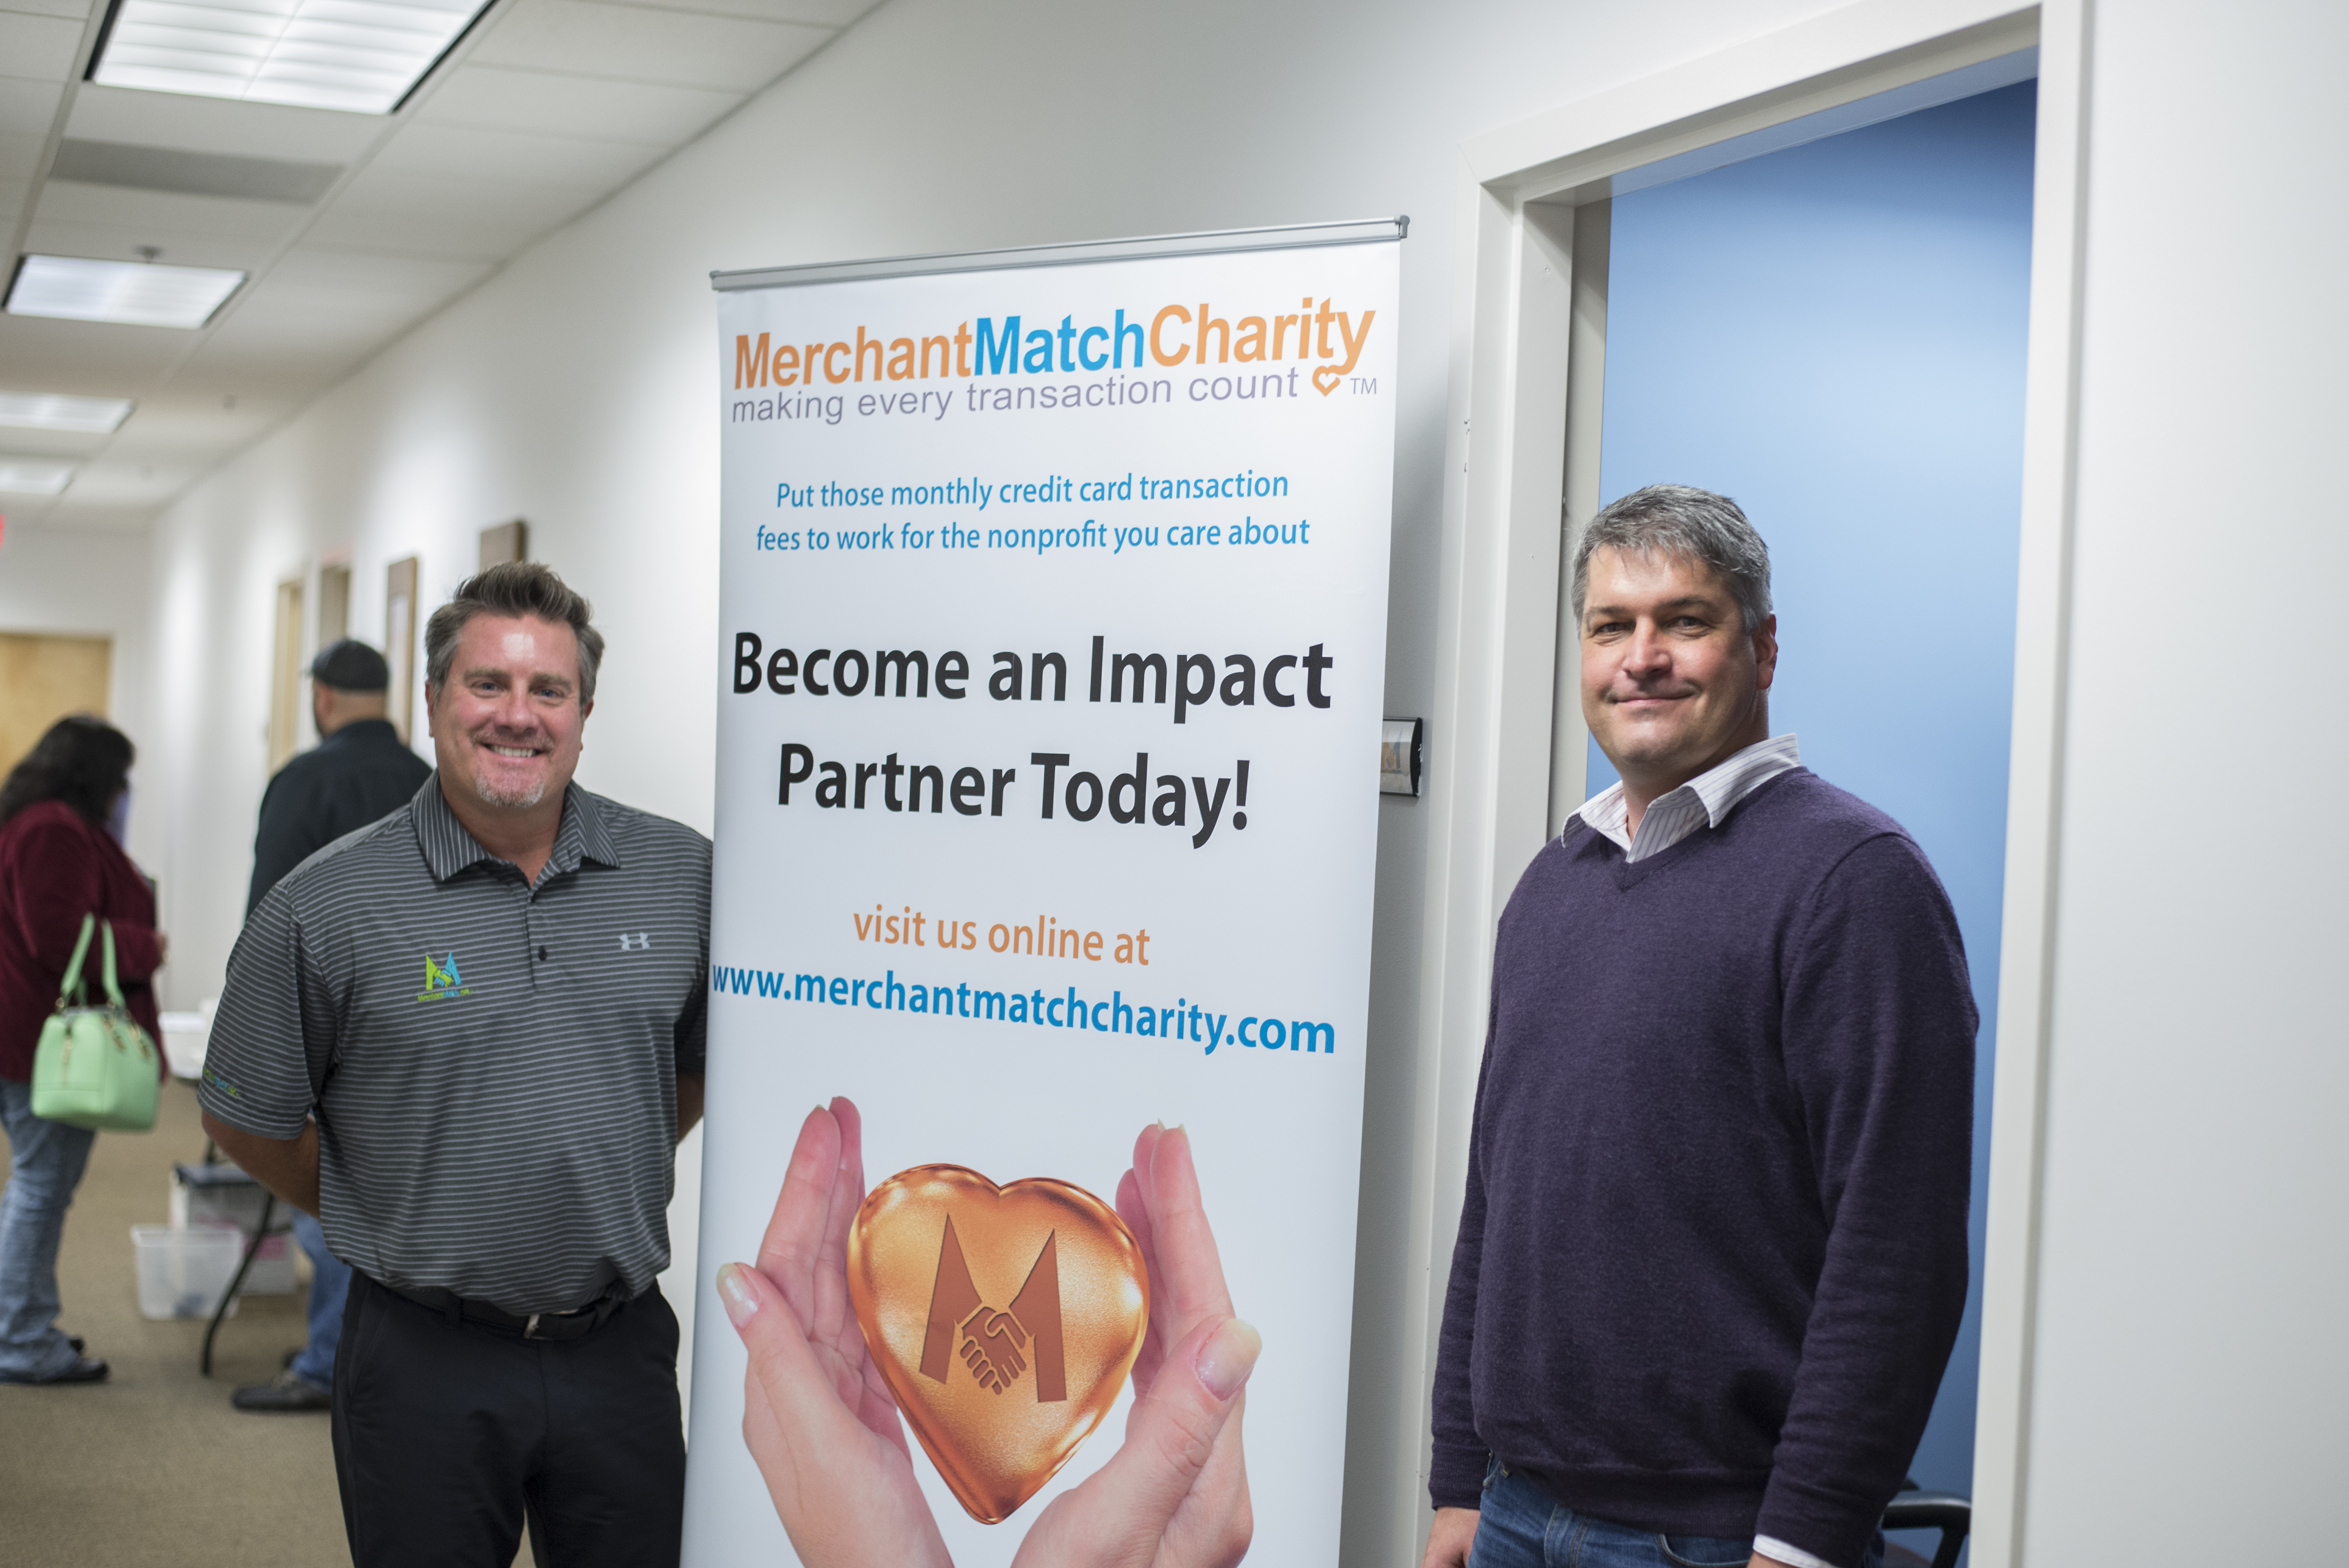 Merchant Match Charity